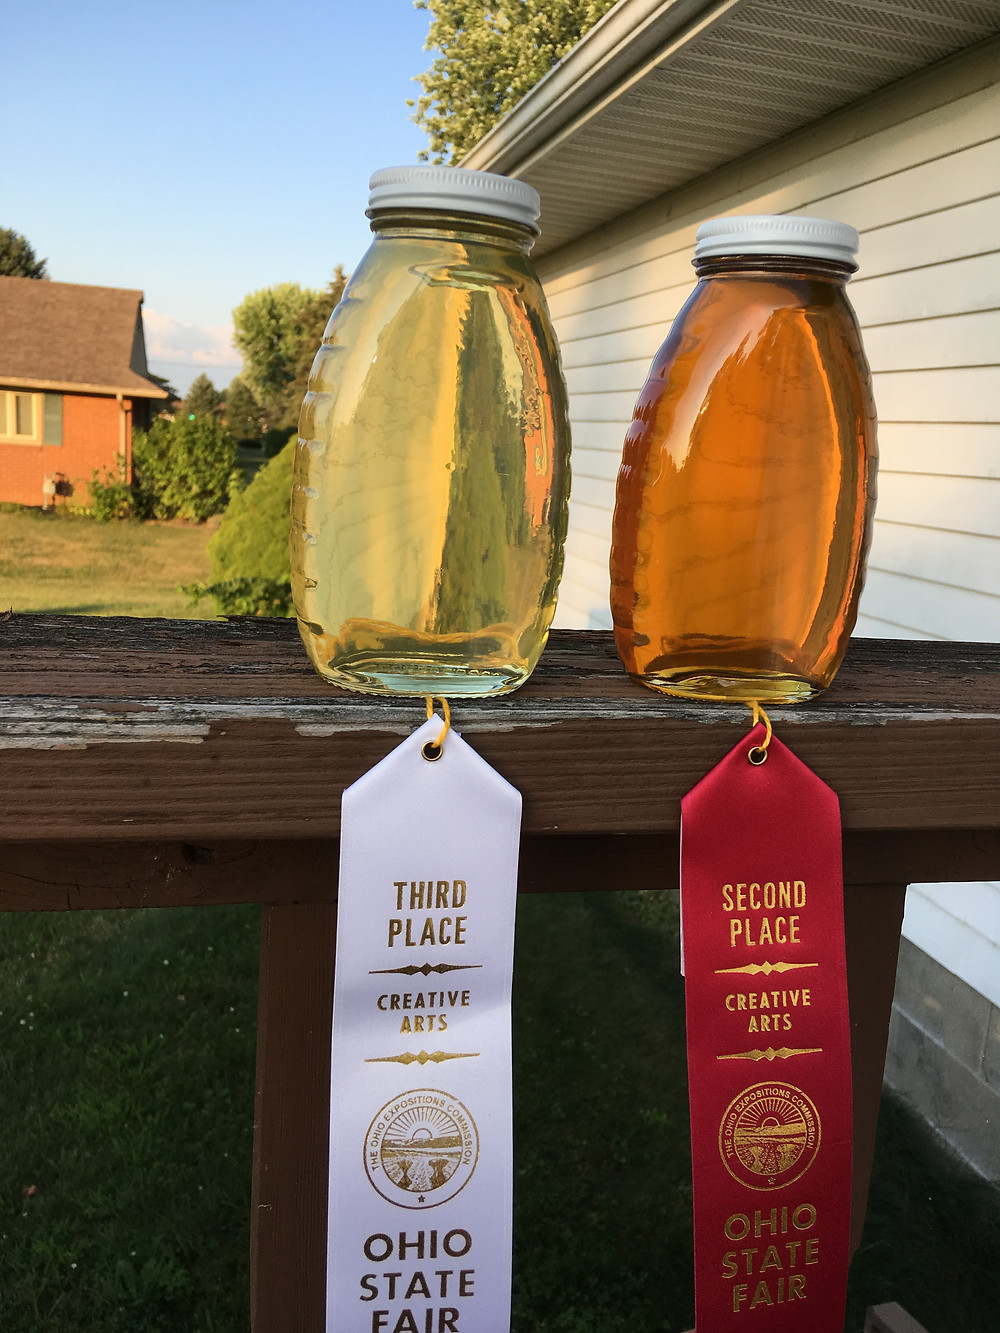 Honey. Ohio State Fair. Water white honey. Extra light amber honey. Dunham Bees.